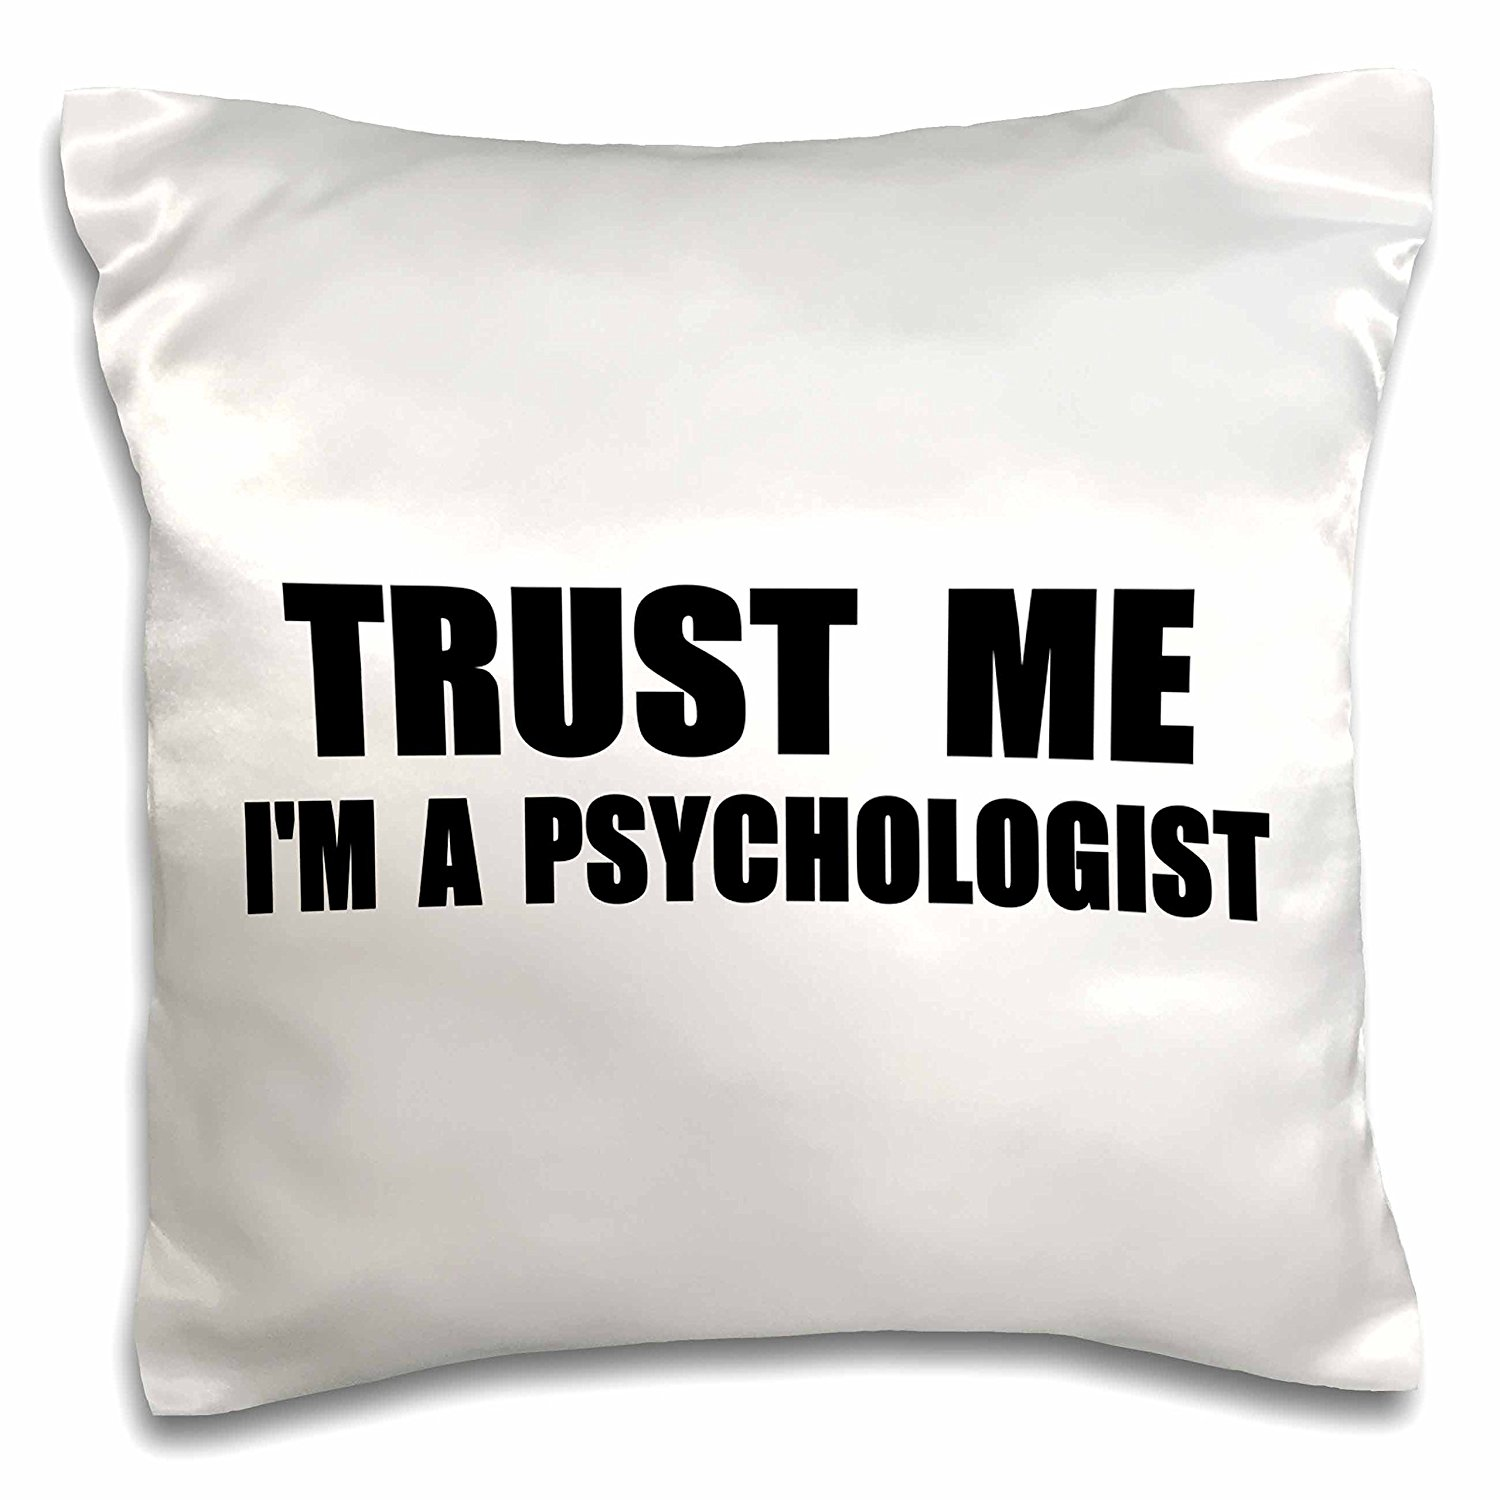 3dRose Trust me Im a Psychologist - work humor - Funny psychology job gift - Pillow Case, 16 by 16-inch (pc_195649_1)